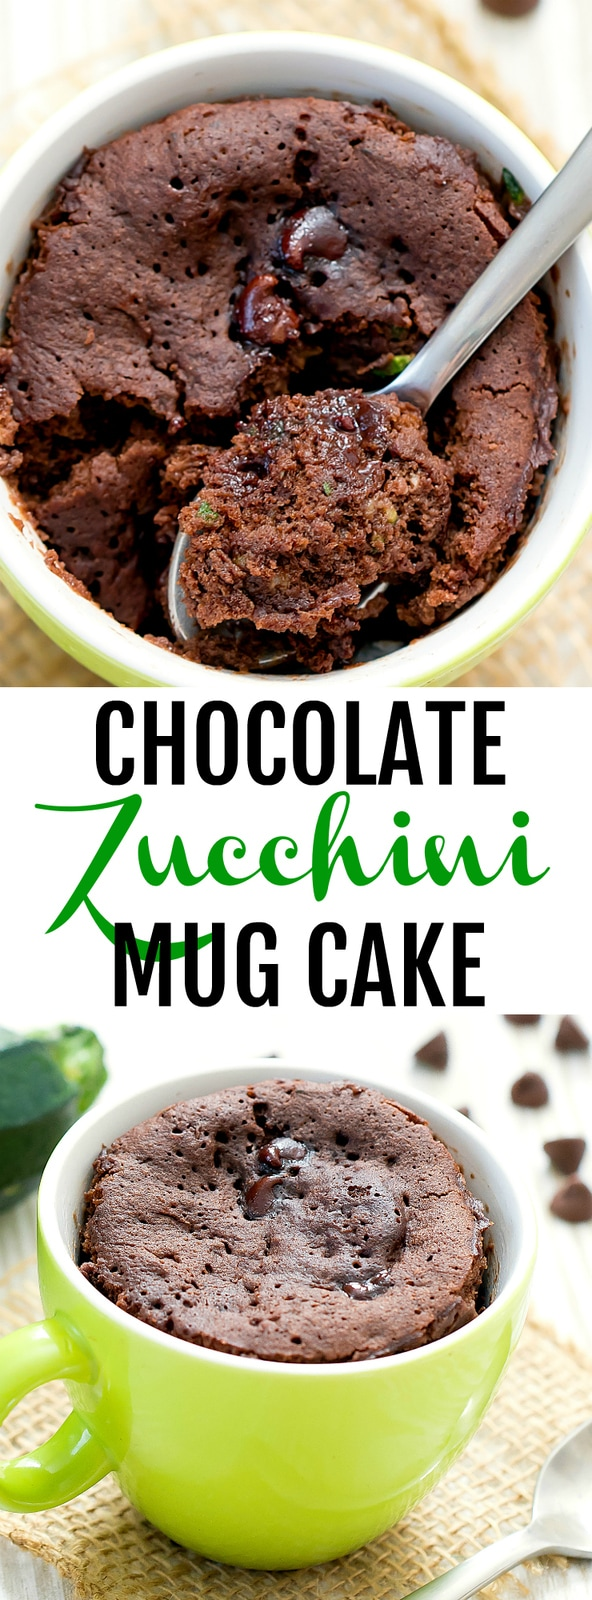 Chocolate Zucchini Mug Cake. A single serving chocolate zucchini cake that cooks in the microwave in less than 2 minutes. The cake is fluffy, moist, chocolatey and will satisfy zucchini bread cravings. #zucchinibread #mugcake #zucchinicake